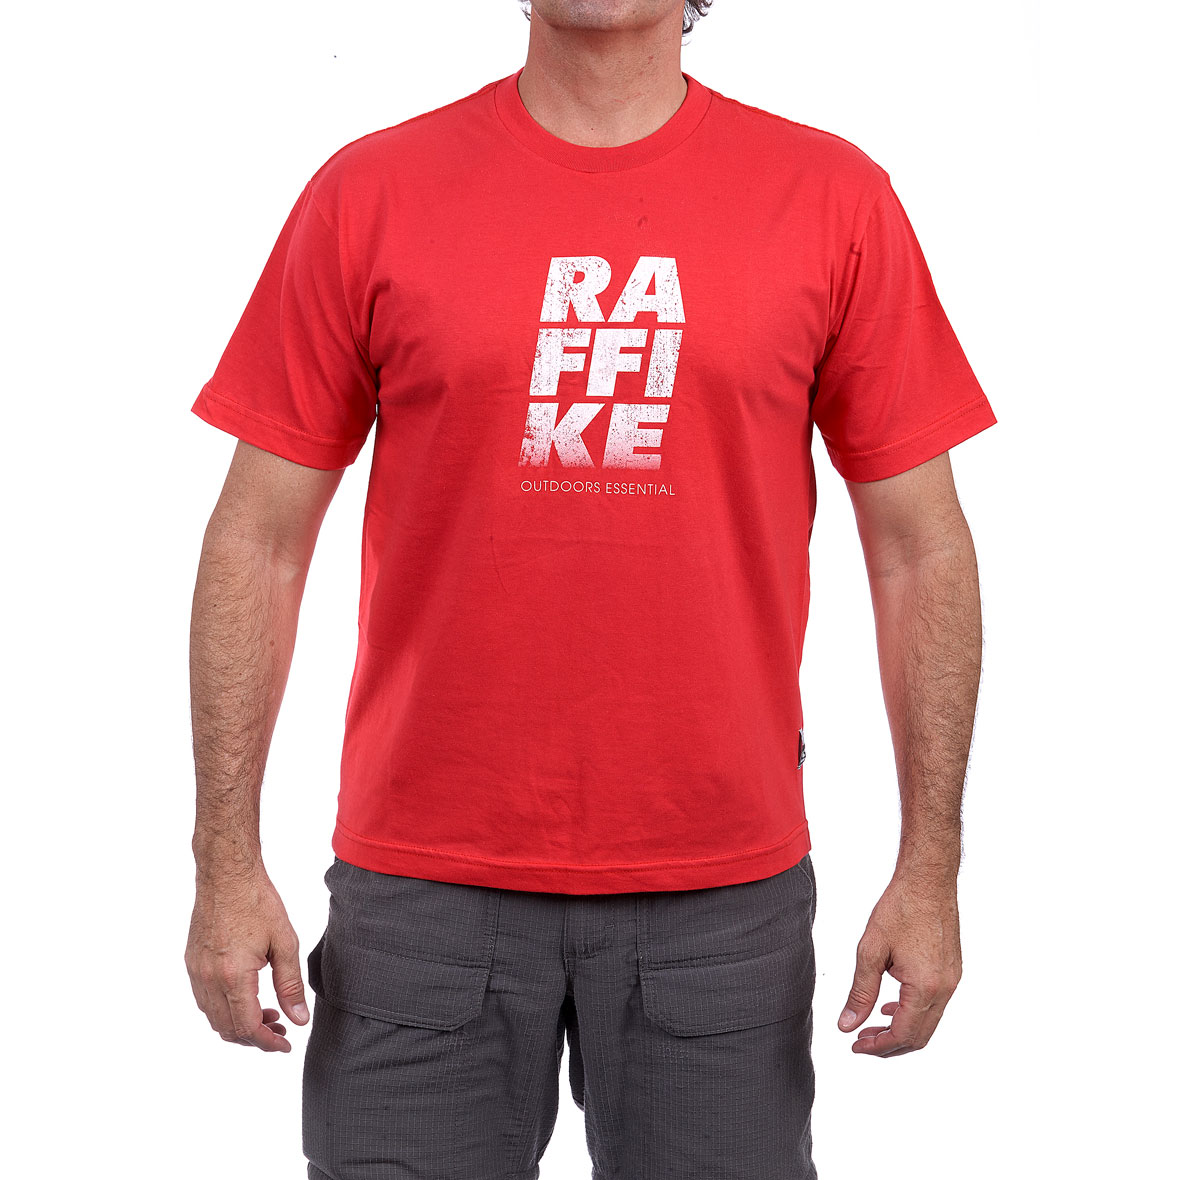 MG 8762 5RE20151030M Adventure T Shirt Trekking Rojo - Adventure T-Shirts